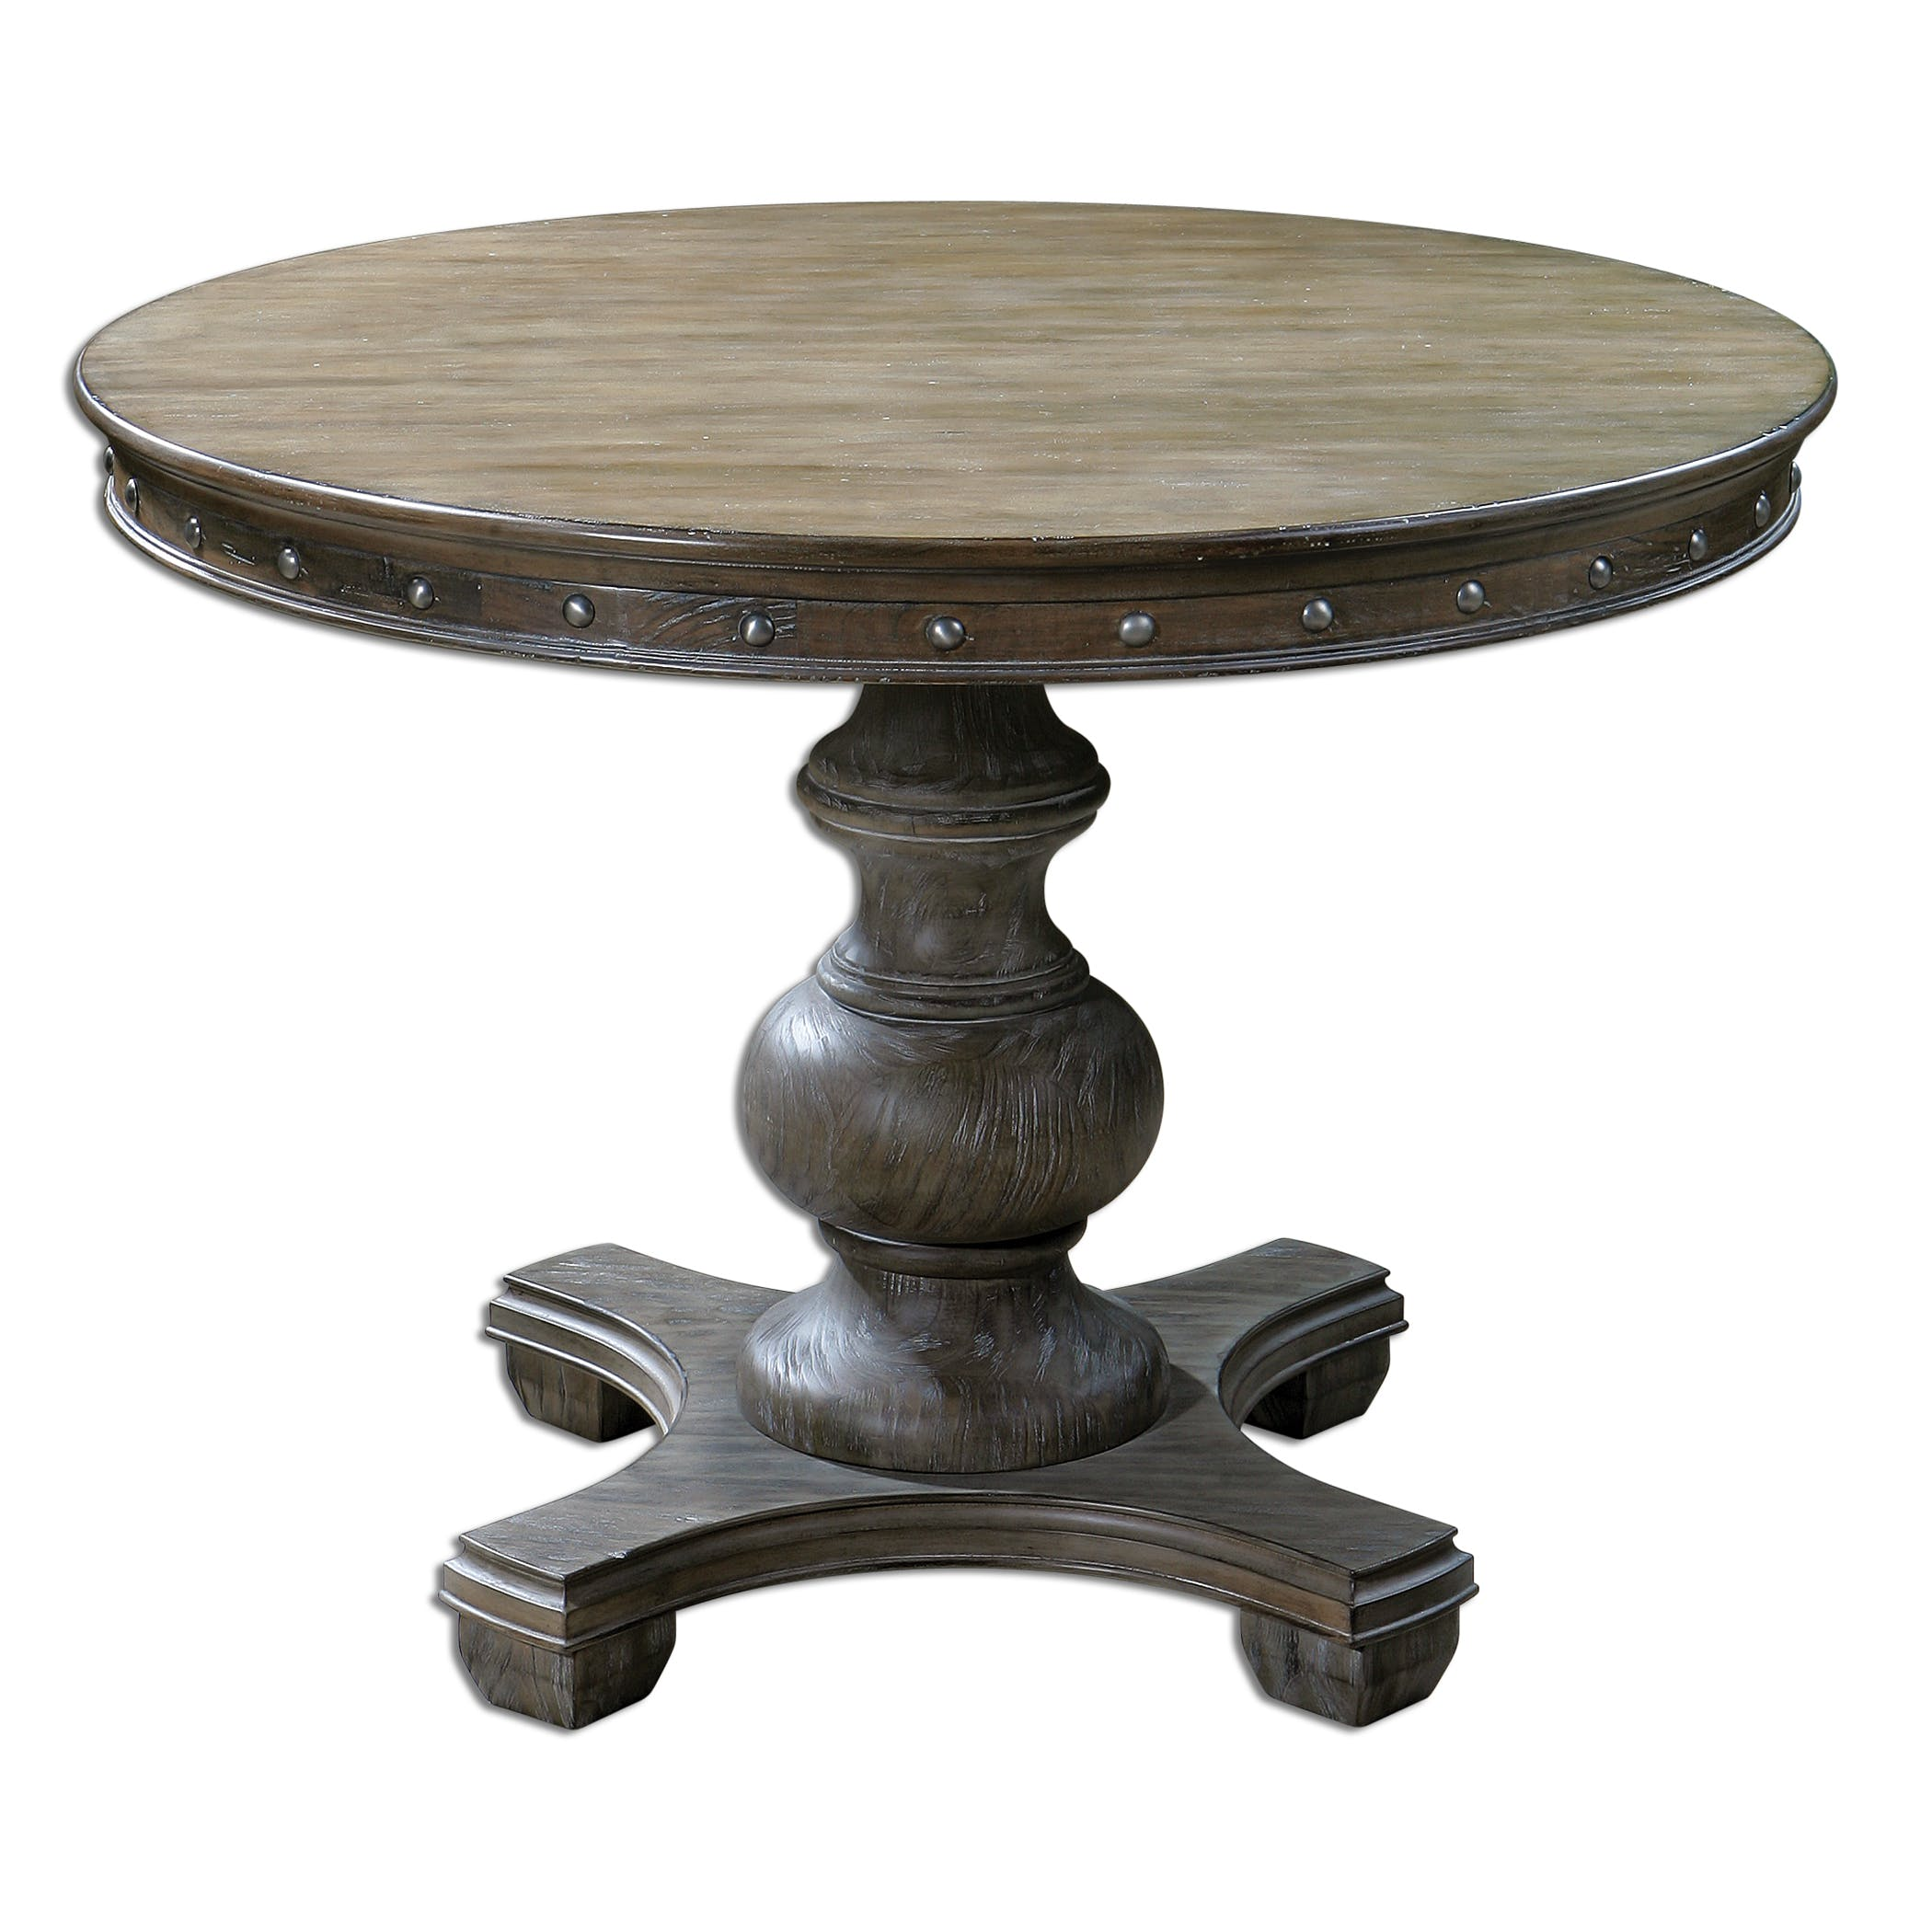 Uttermost Living Room Sylvana Wood Round Table 24390 - Penny Mustard